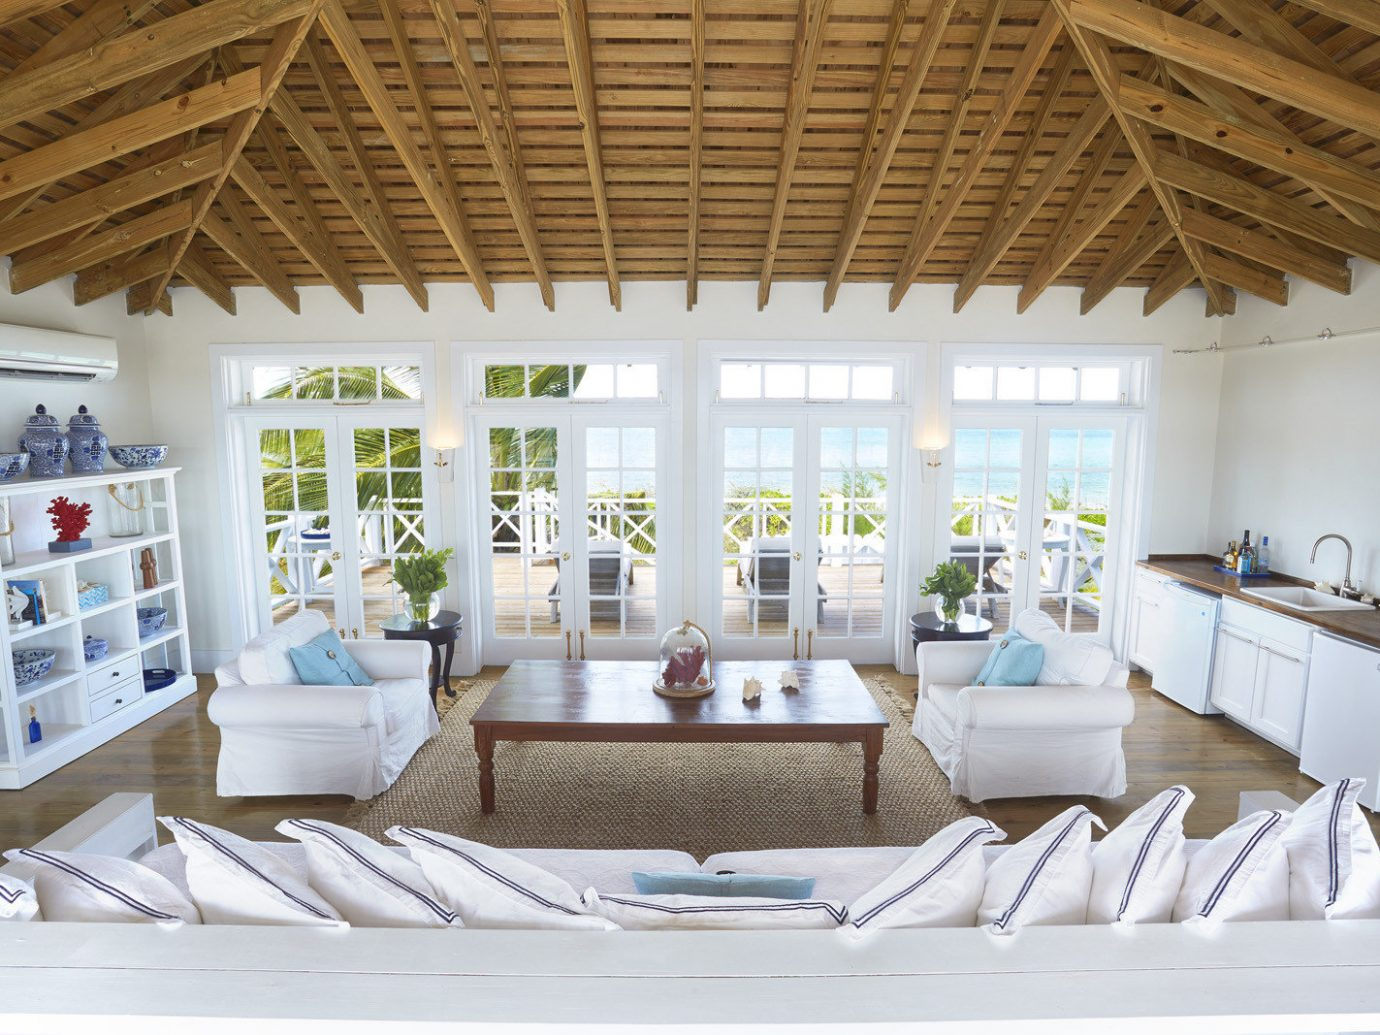 Hotels Romance indoor window room property ceiling living room estate interior design home real estate cottage Design Resort outdoor structure Villa farmhouse furniture